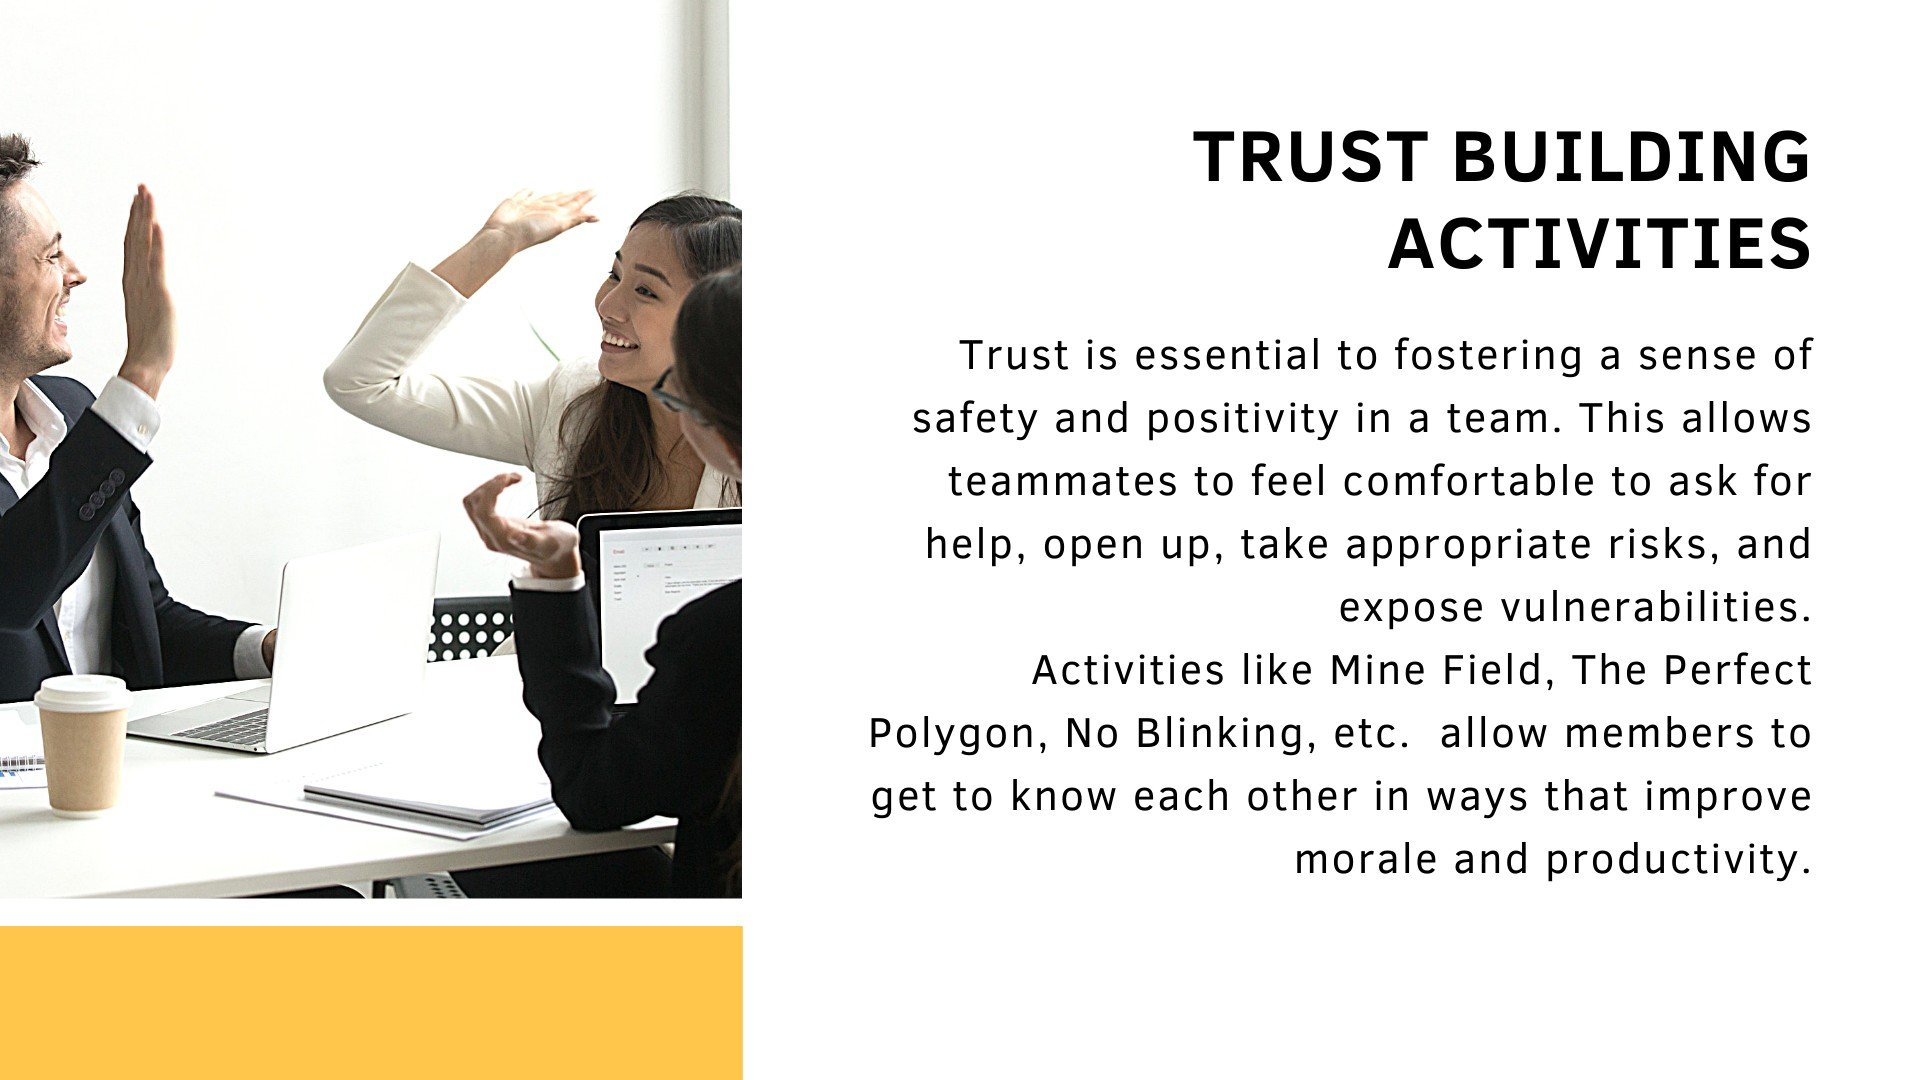 Trust building activities. Trust is essential to fostering a sense of safety and positivity in a team. This allows teammates to feel comfortable to ask for help, open up, take appropriate risks, and expose vulnerabilities. Activities like Mine Field, The Perfect Polygon, No Blinking, etc.  allow members to get to know each other in ways that improve morale and productivity.